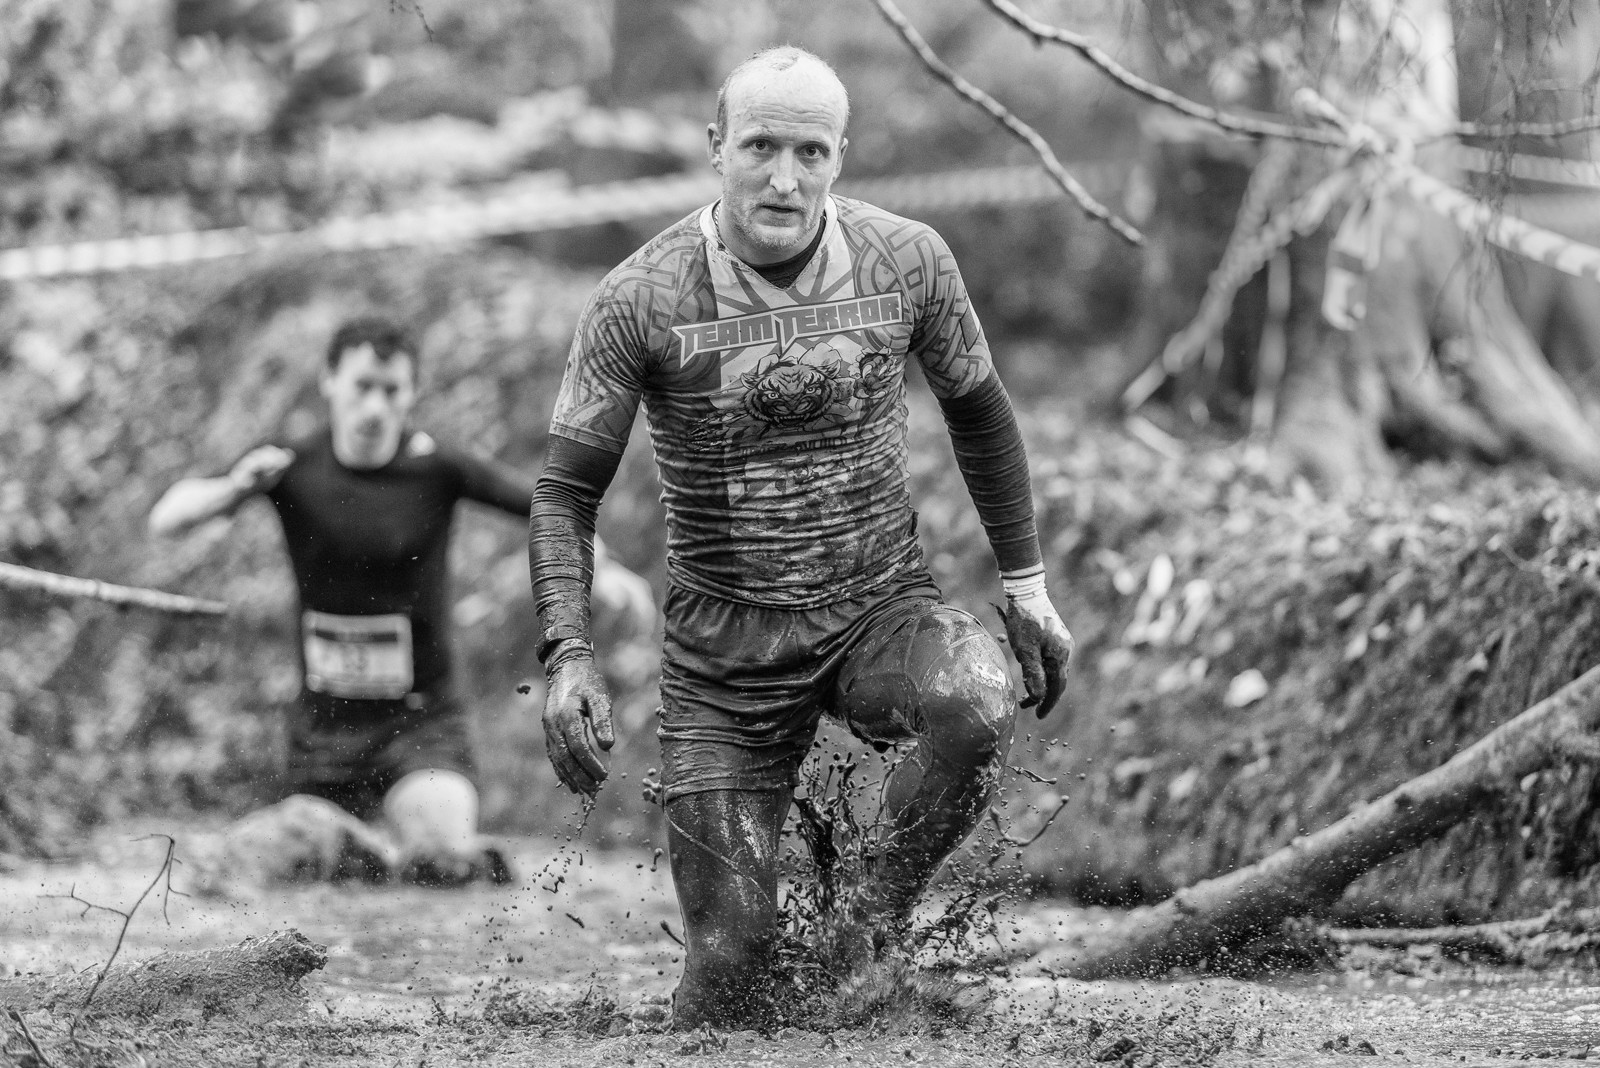 MONO - The Mud Pit by Philip Blair (10 marks)